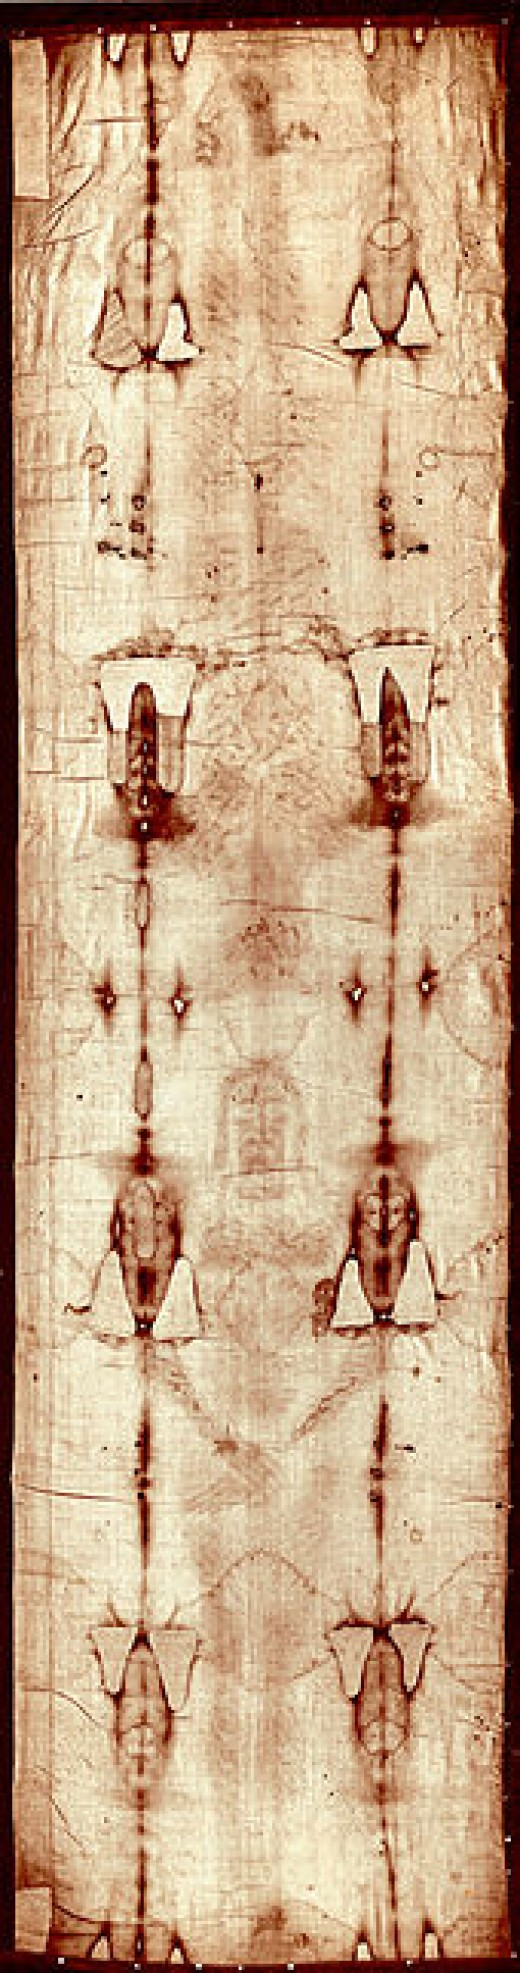 Full length image of the Turin Shroud